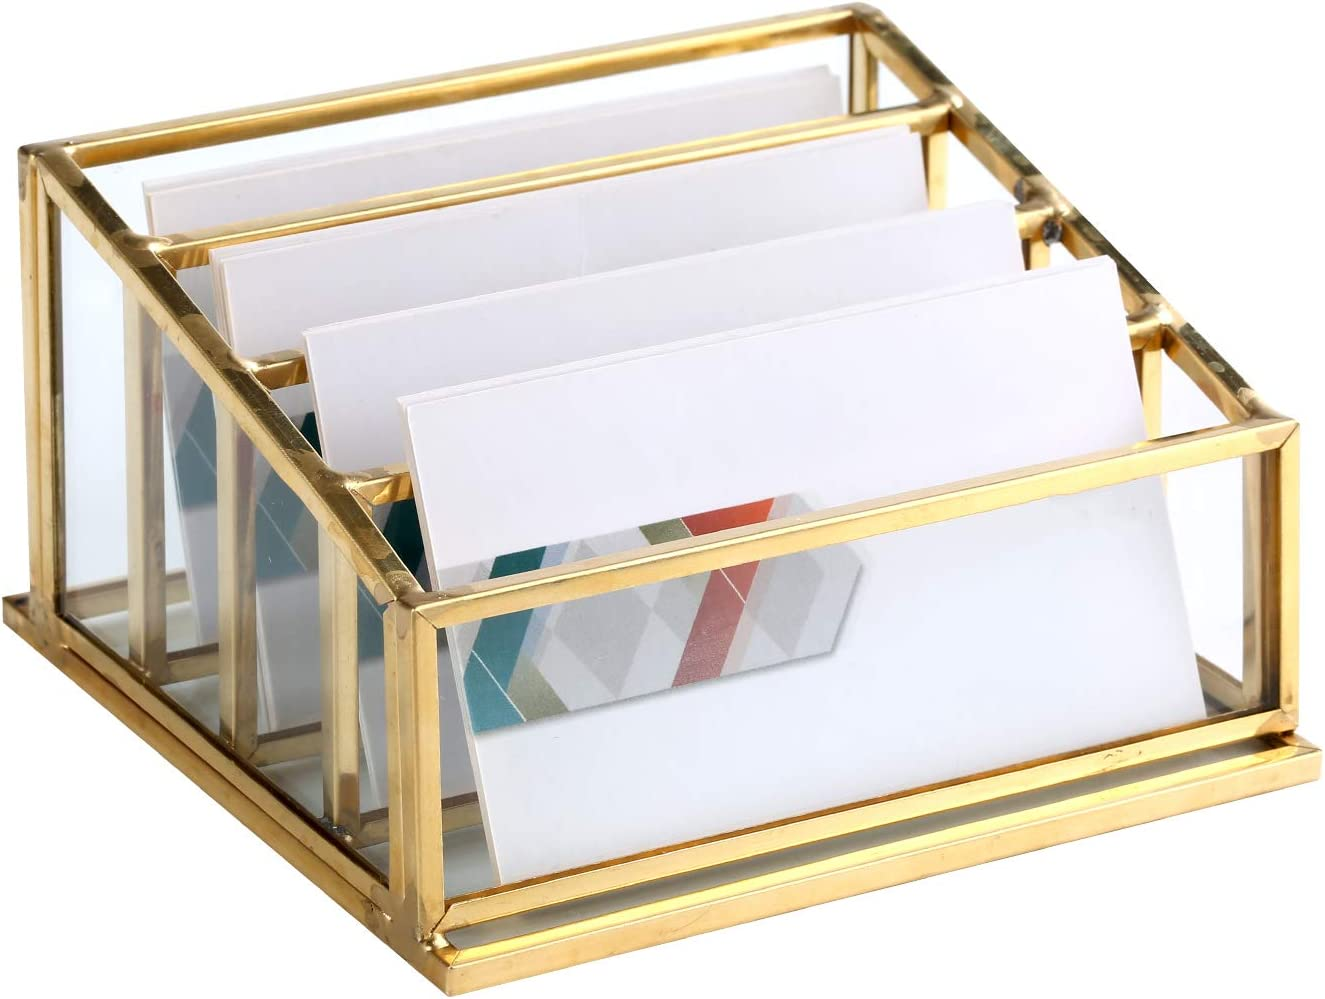 Glass Business Card Holder, Vintage Durable Office Name Cards Display Holder Handcrafted Professional Office Desktop Countertop Business Cards Organizer Unique and Modern Fits190 Pcs Cards (4 Tiers)